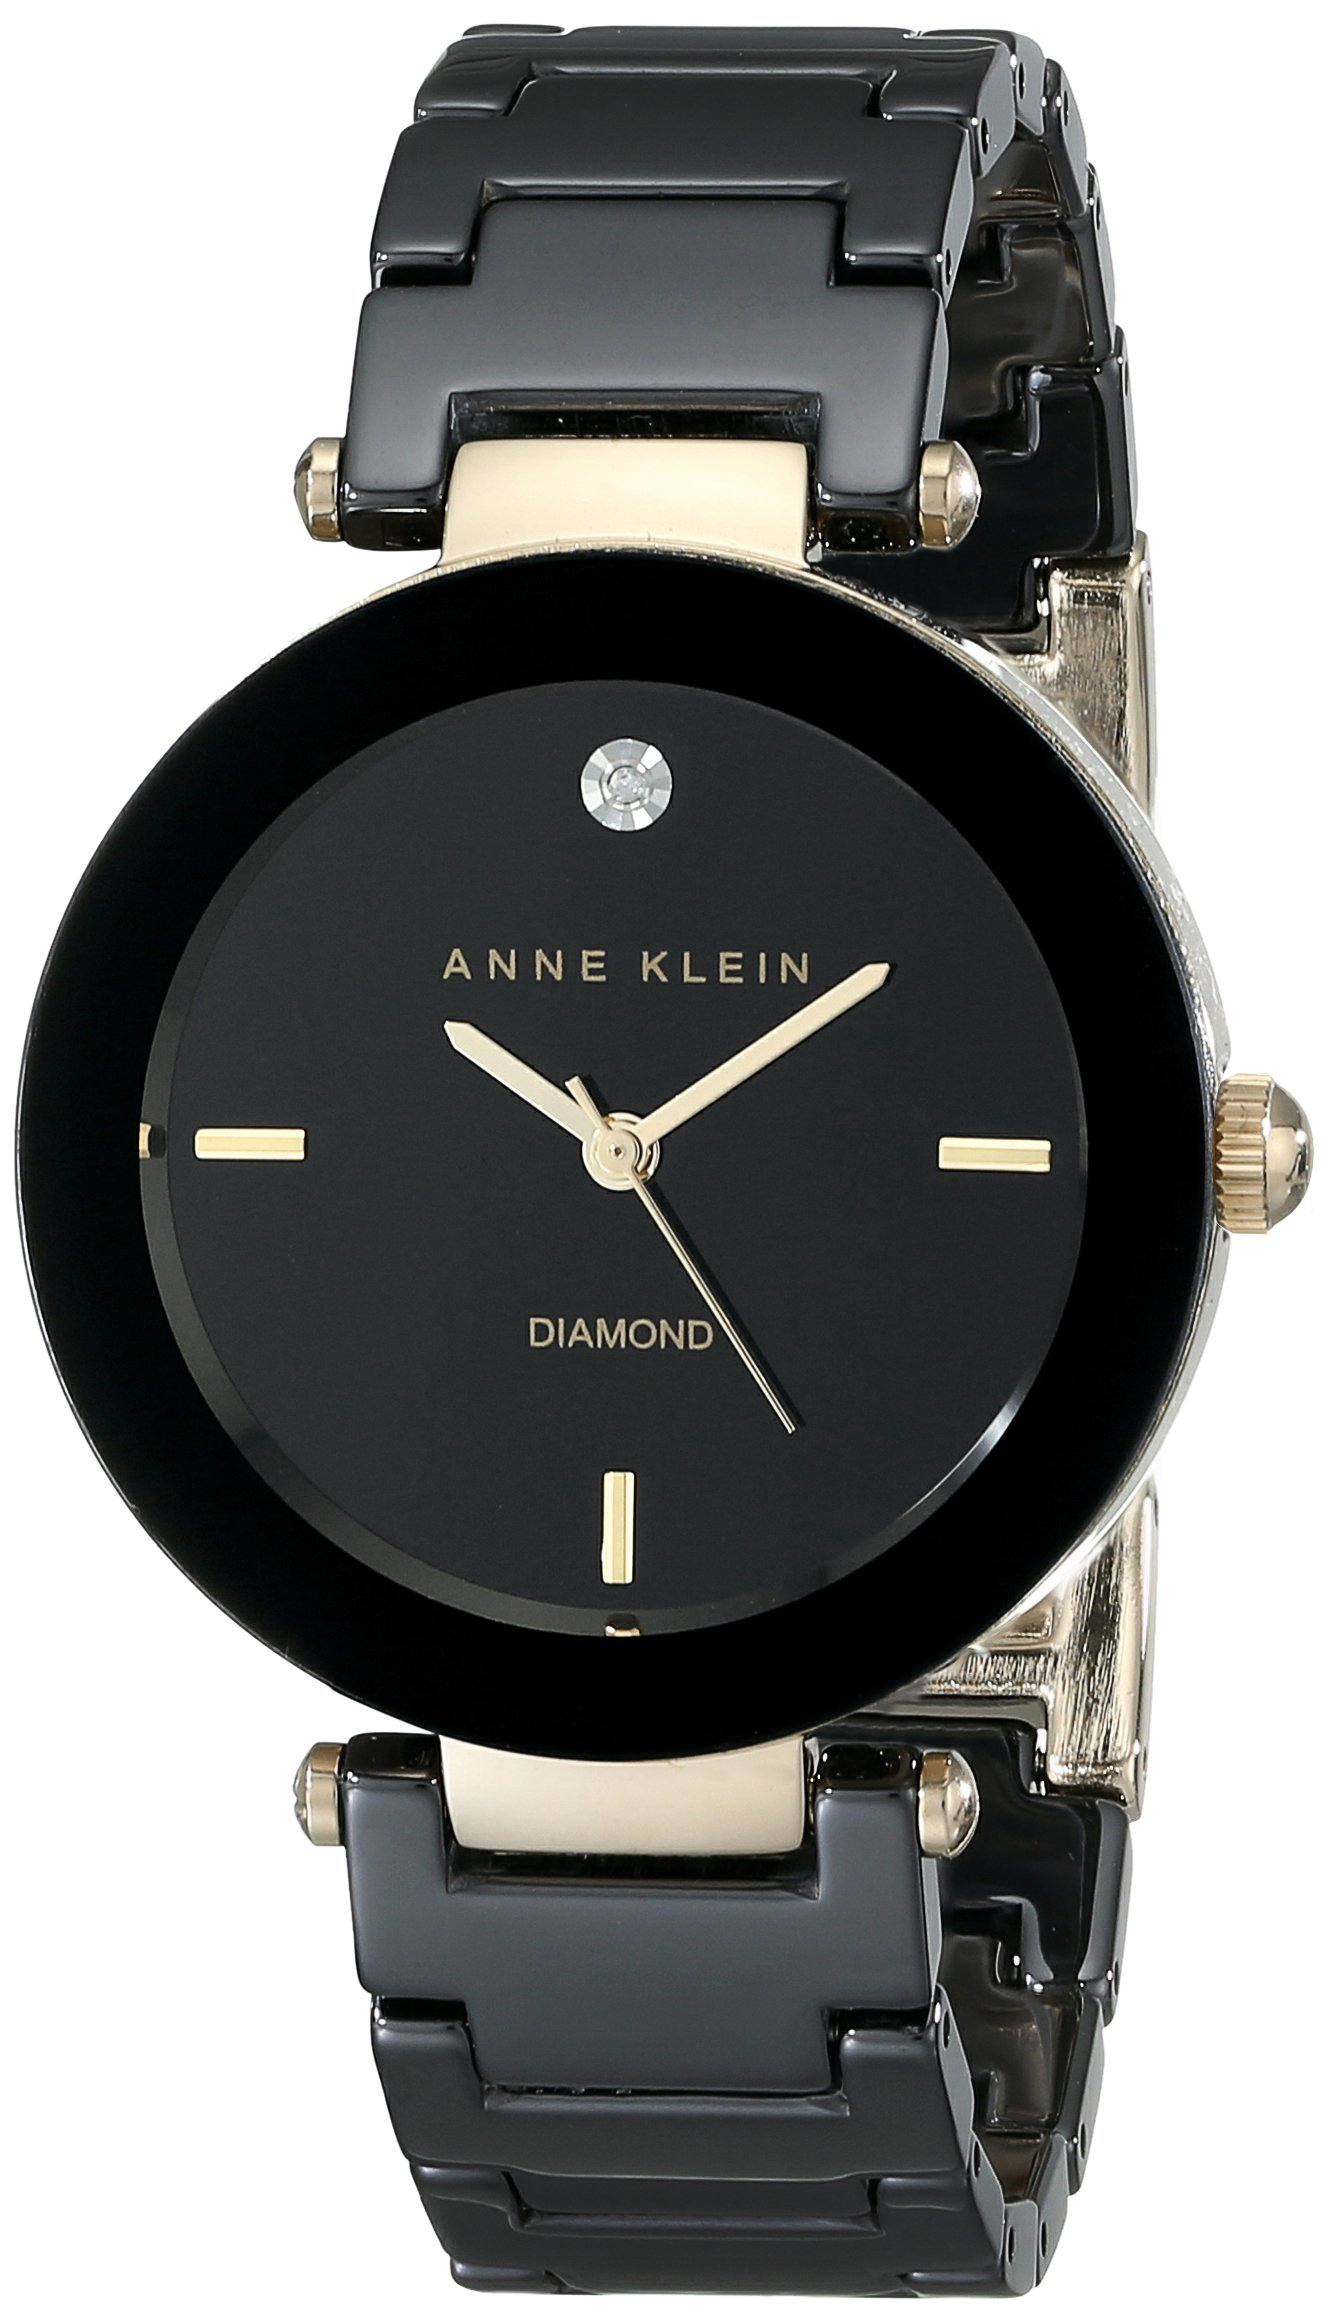 Anne Klein Women's AK/1018BKBK Black Ceramic Bracelet Watch with Diamond Accent by Anne Klein